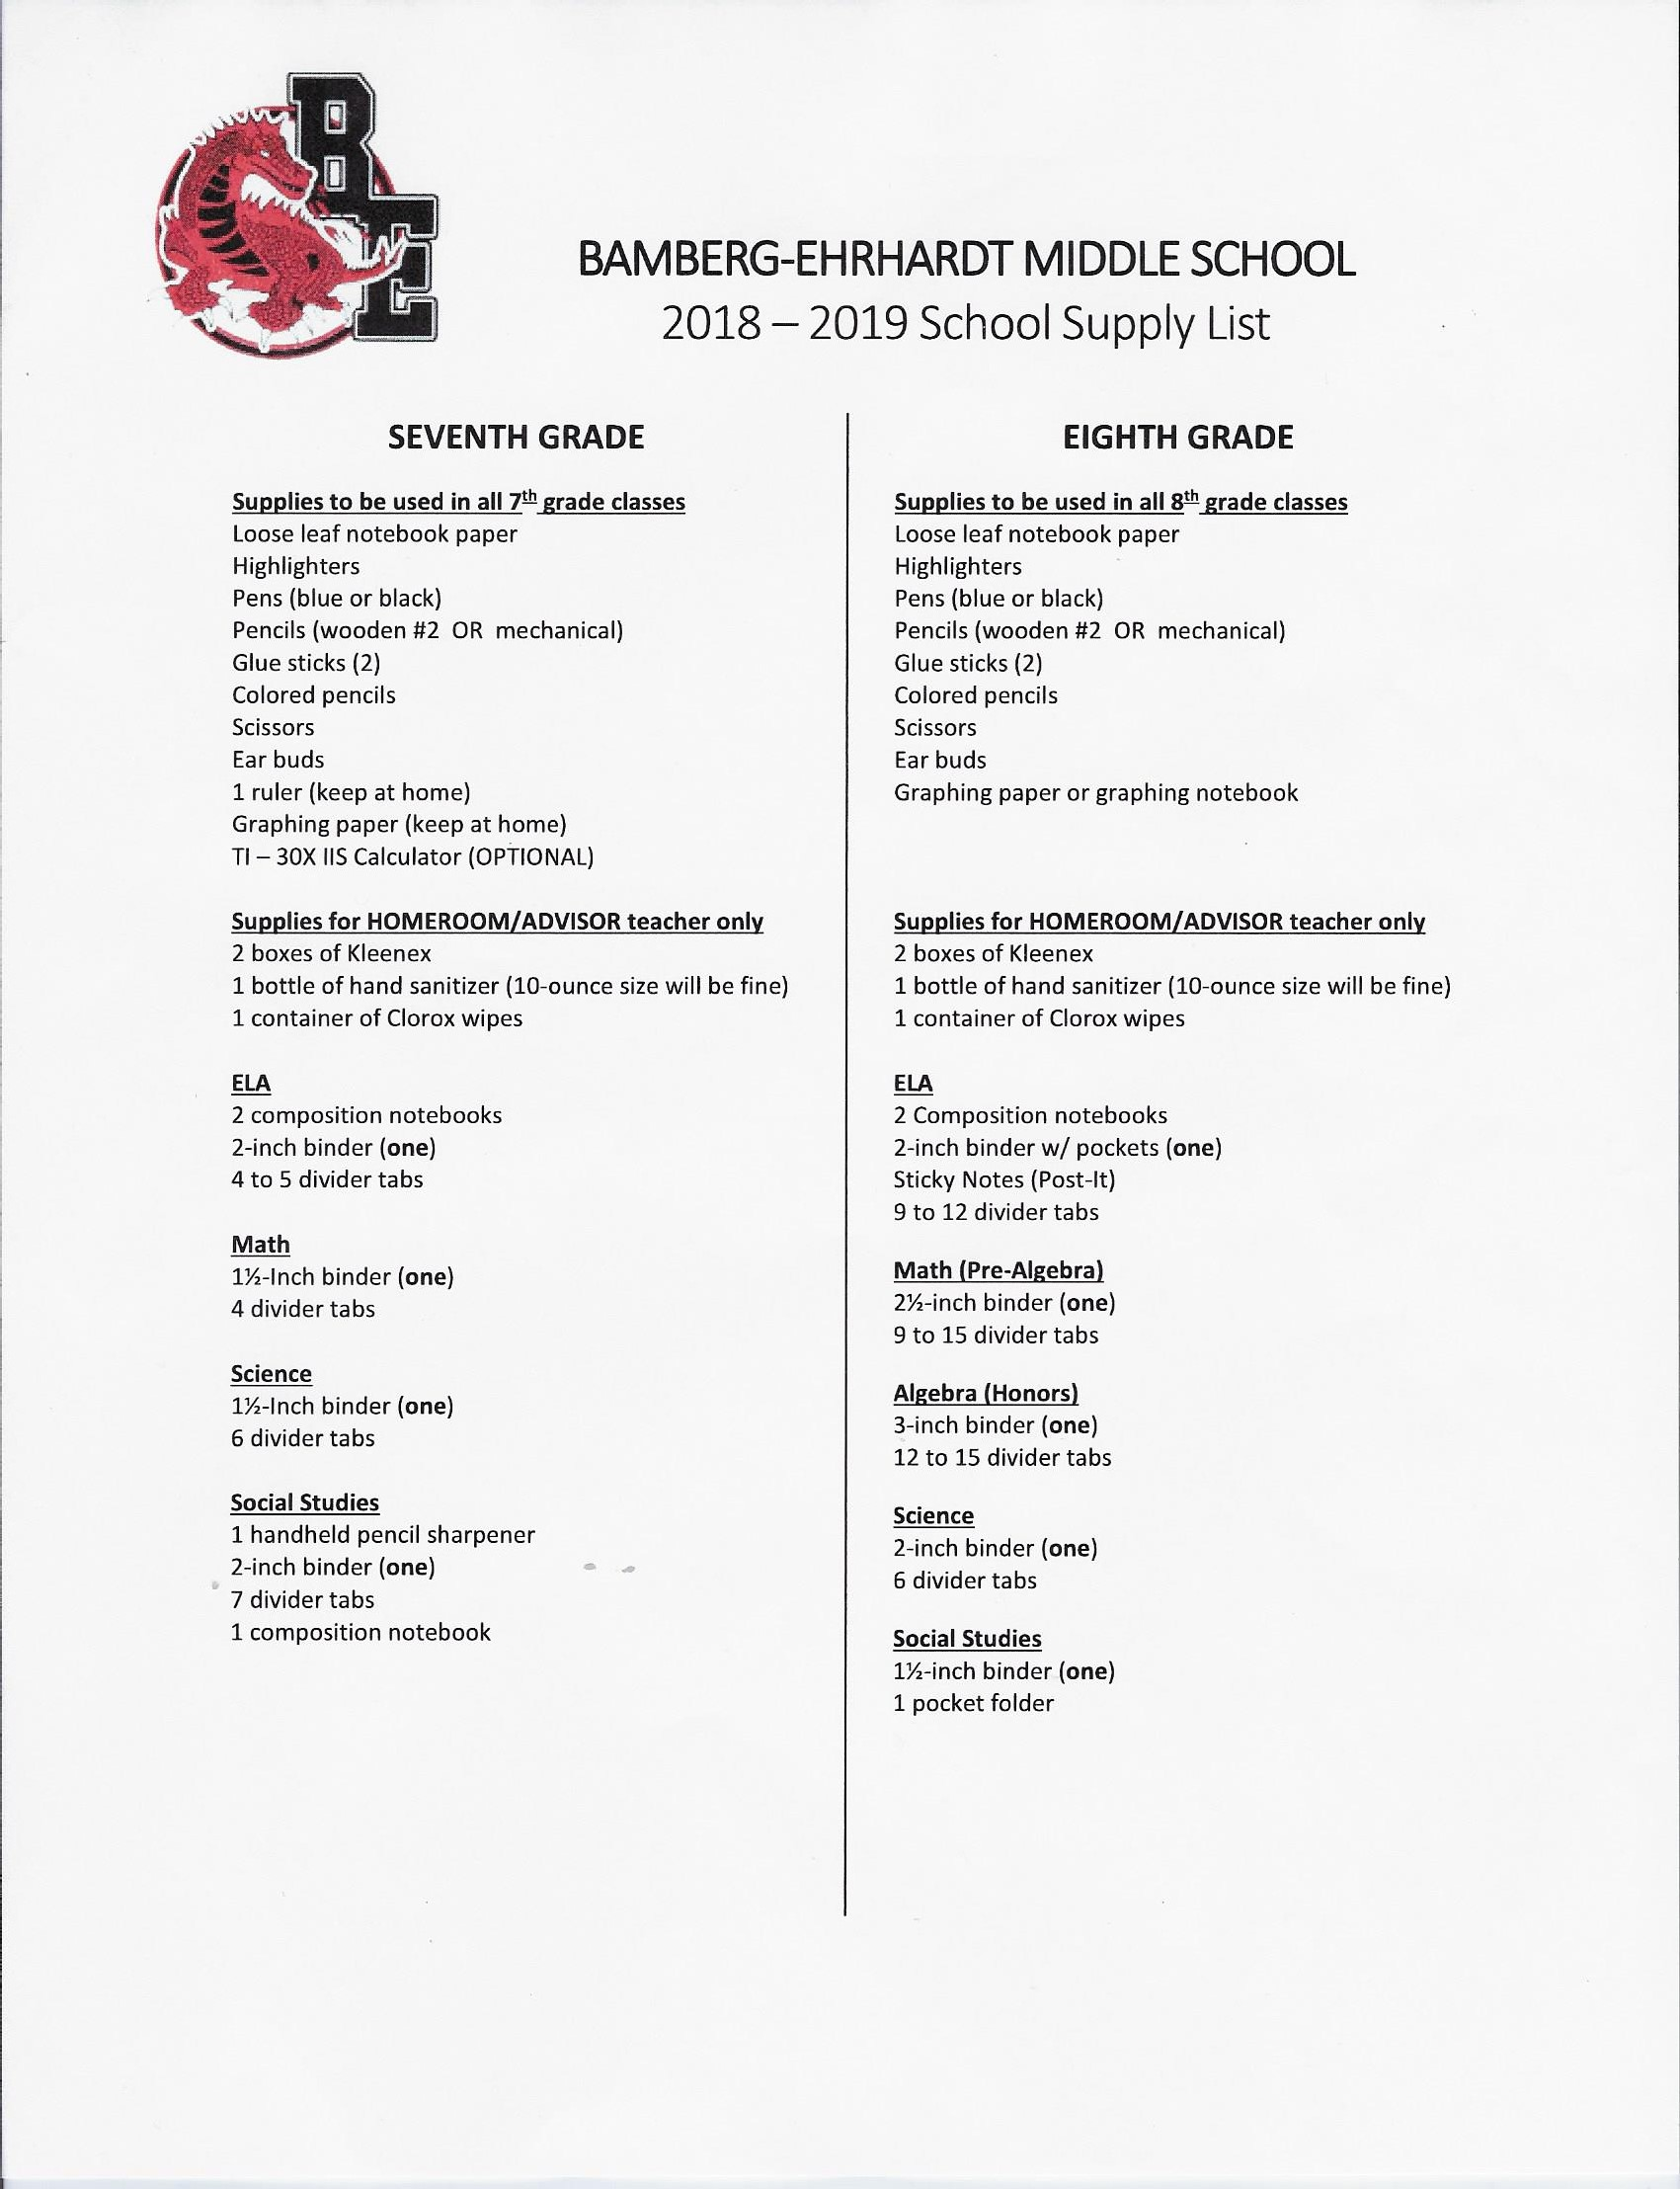 BEMS School Supply List 2018-2019